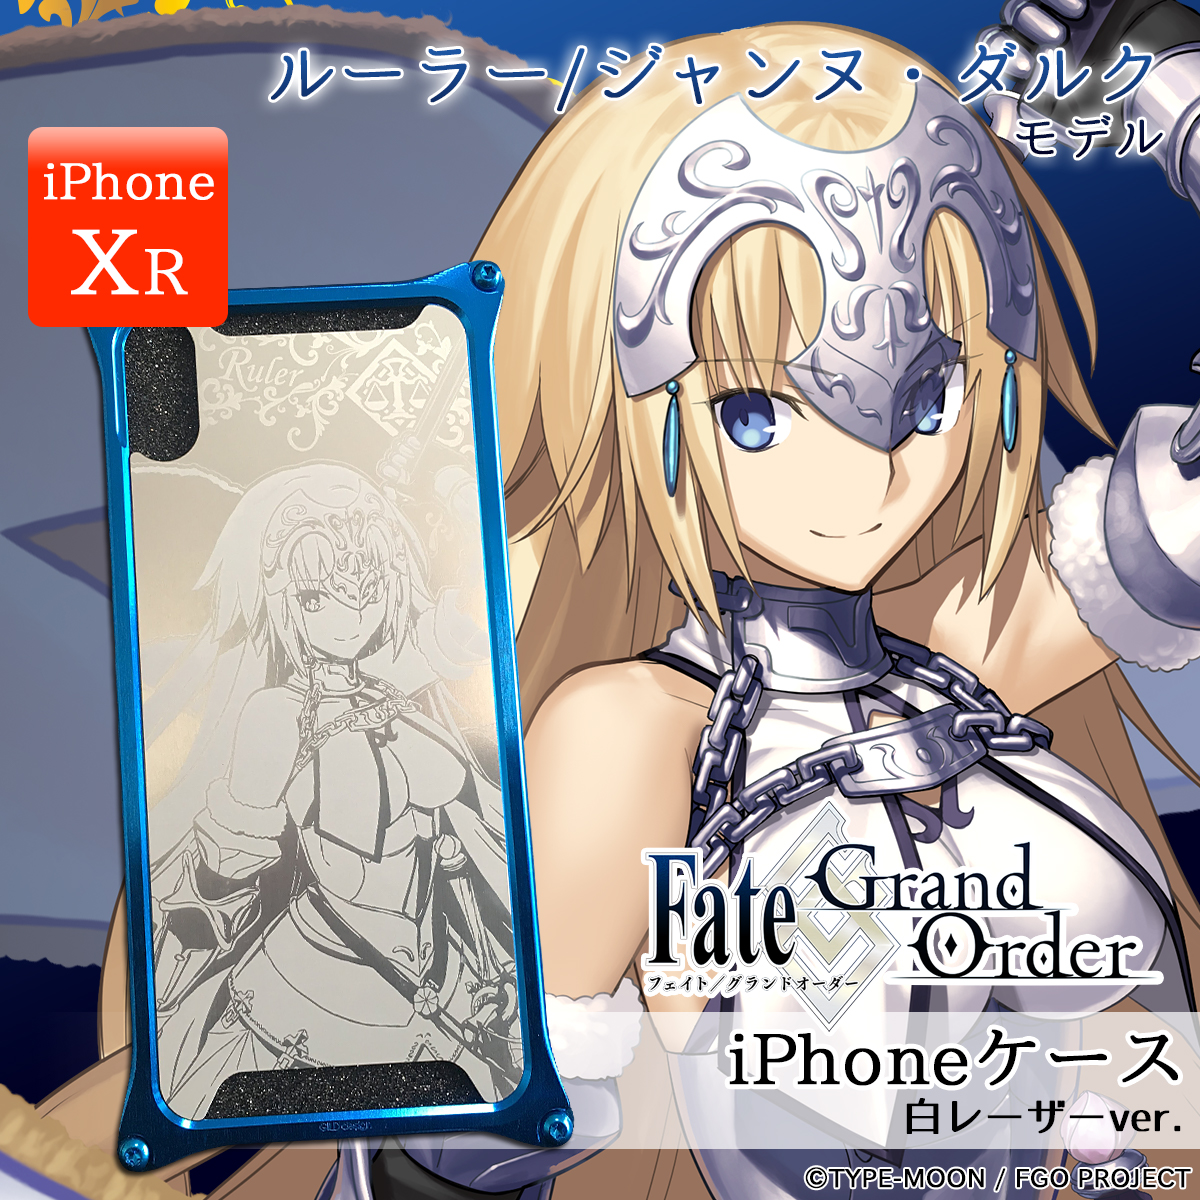 『Fate/Grand Order』×『GILD design』iPhoneXRケース ルーラー/ジャンヌ・ダルク白レーザーver.